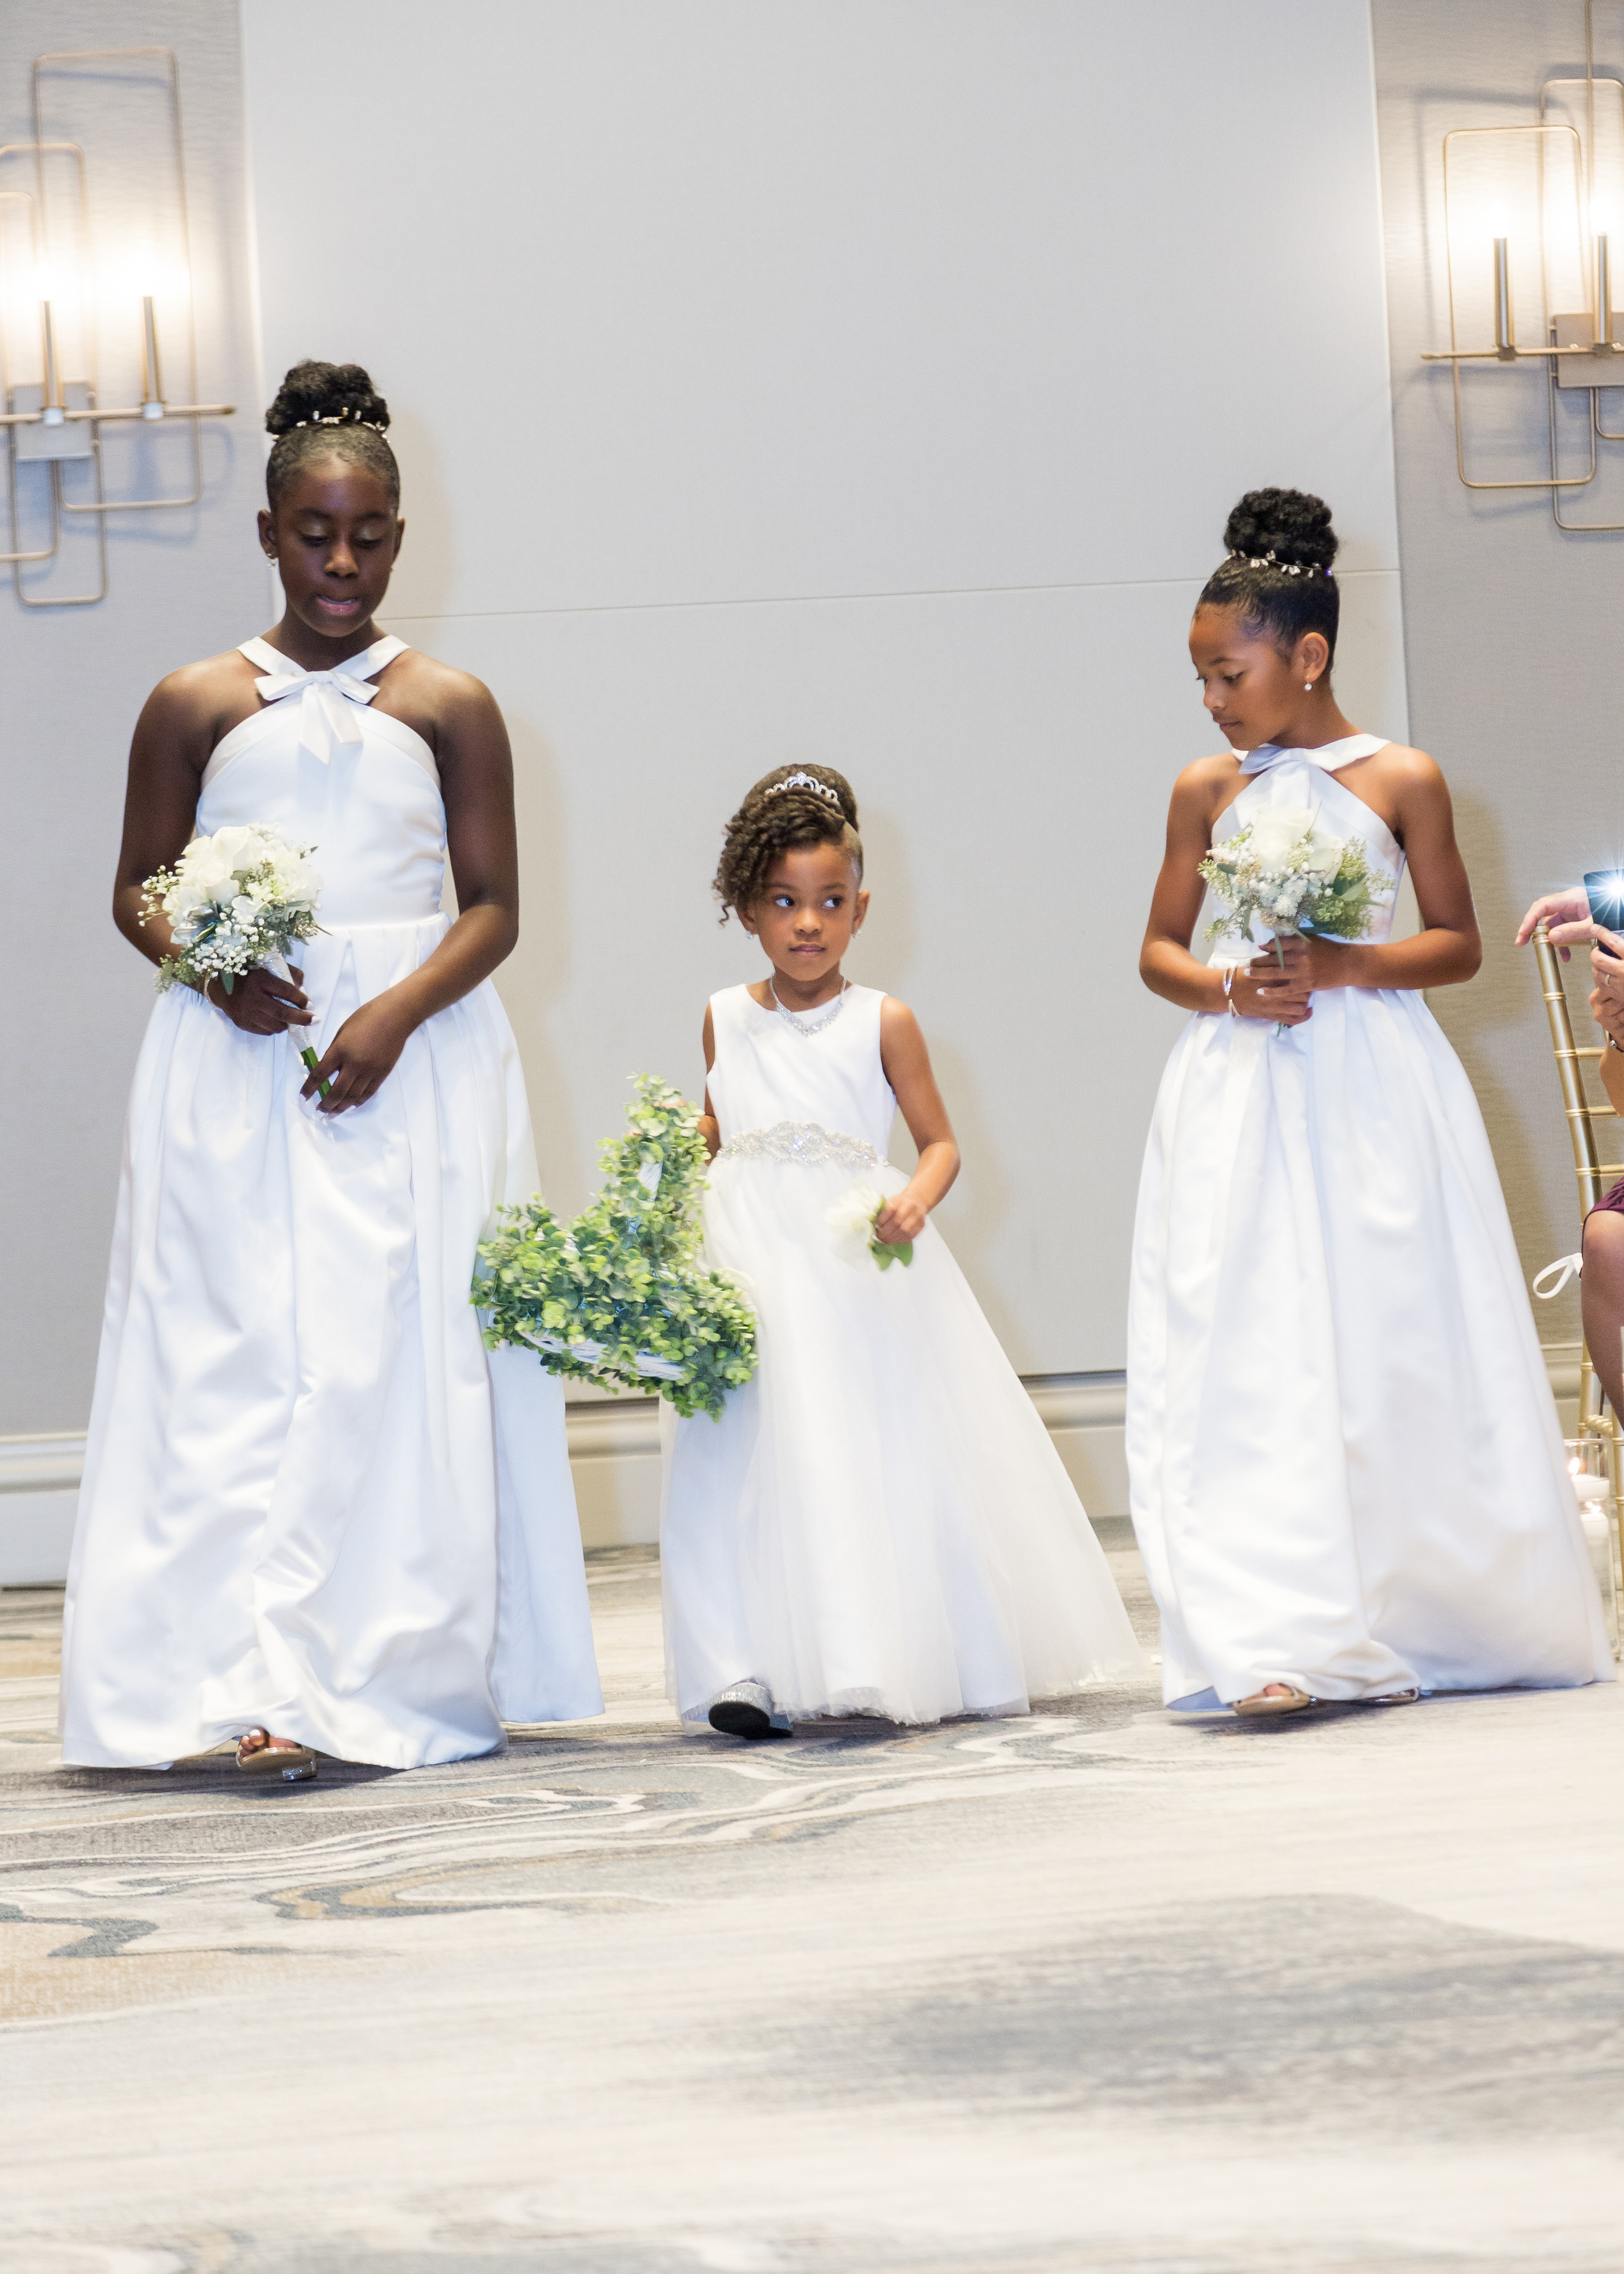 The junior bridesmaids and flower girl come down the isle together during the wedding ceremony at the Hilton Main in Norfolk, Virginia.